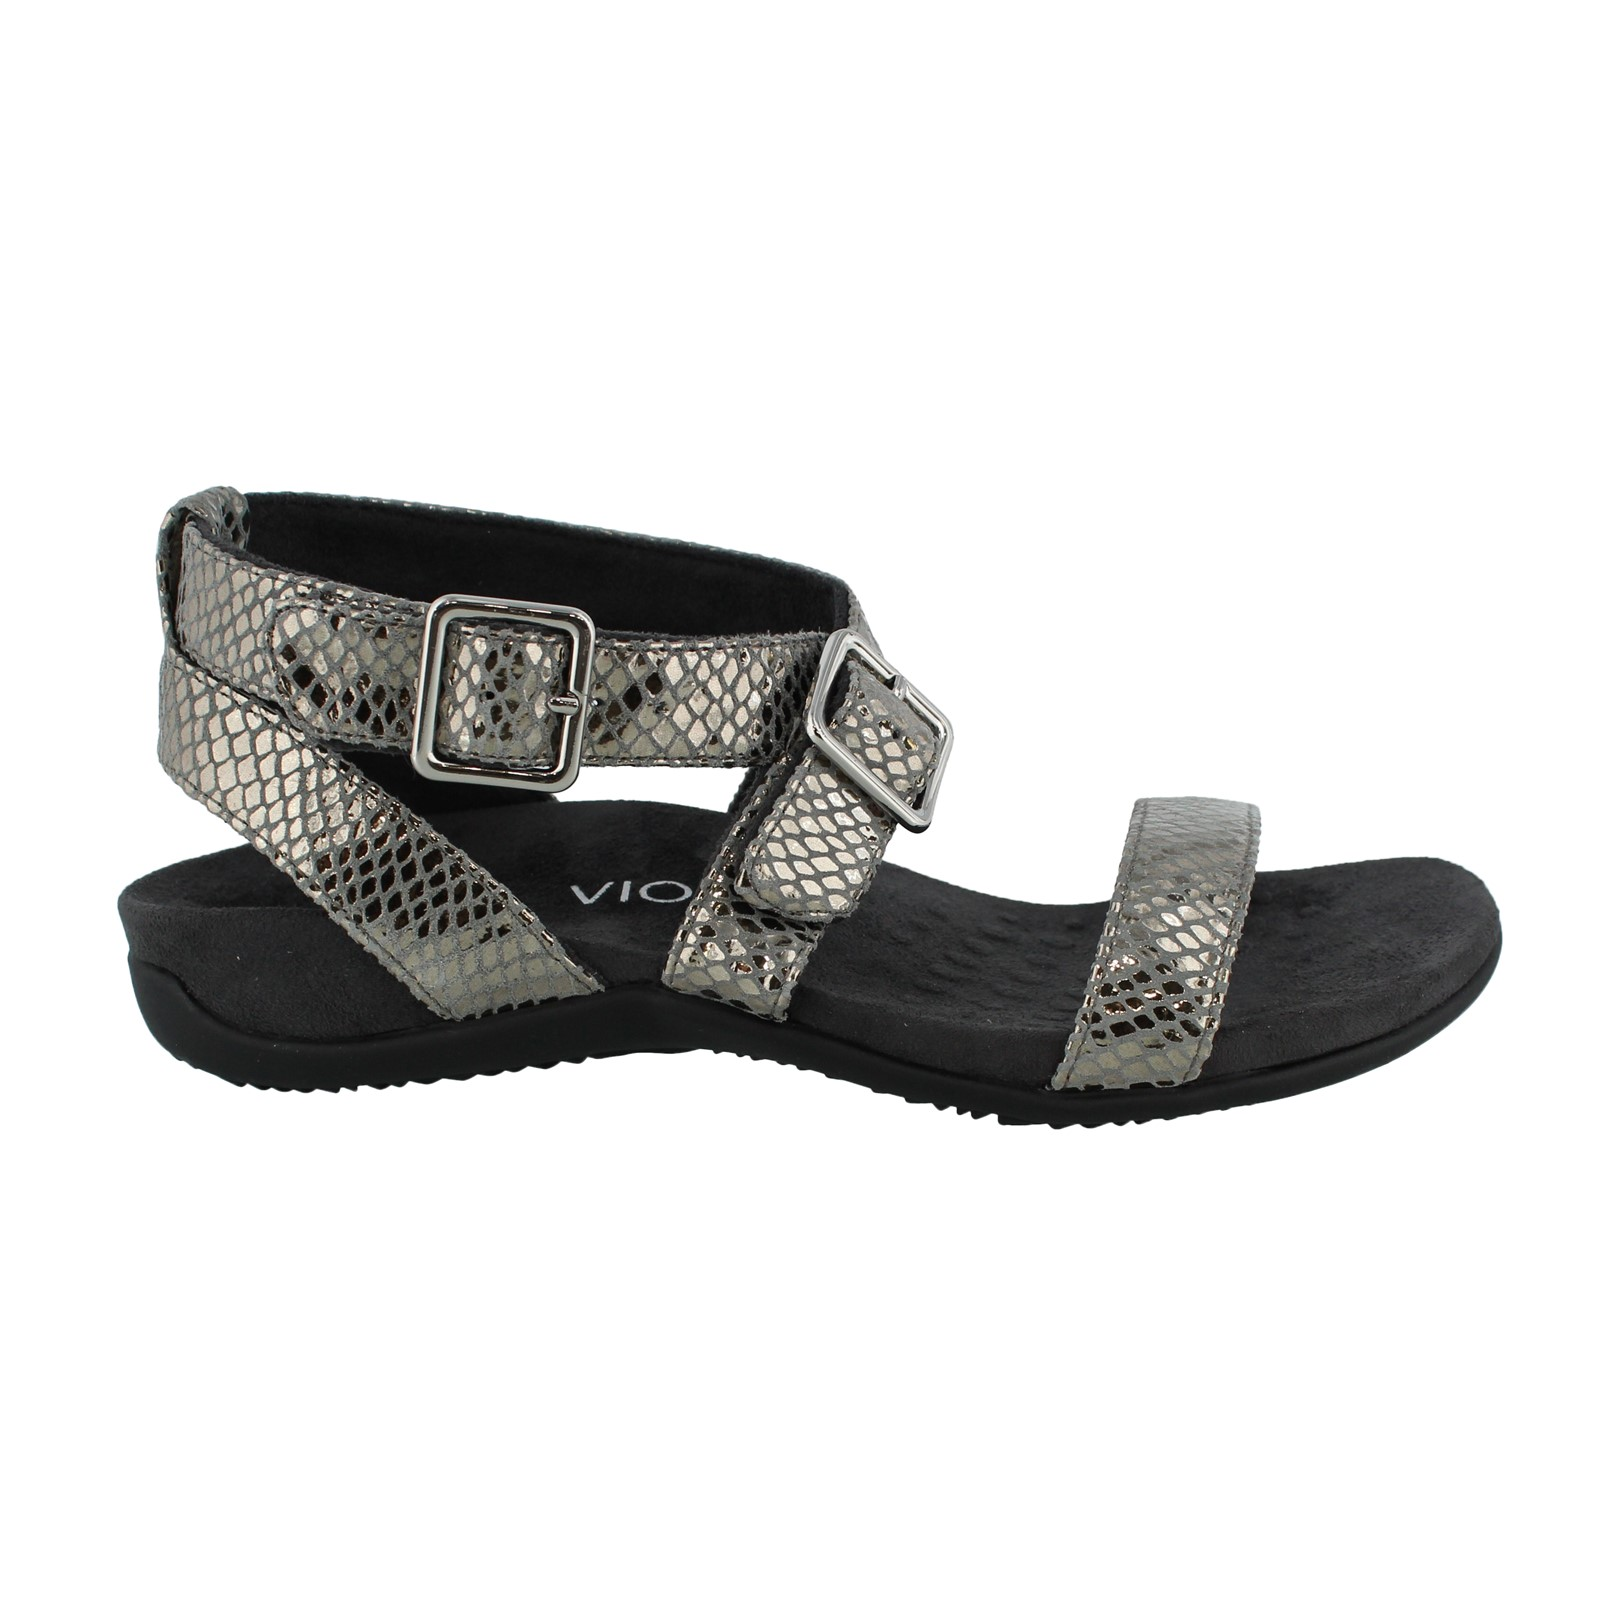 Women's Vionic, Elnora Sandals